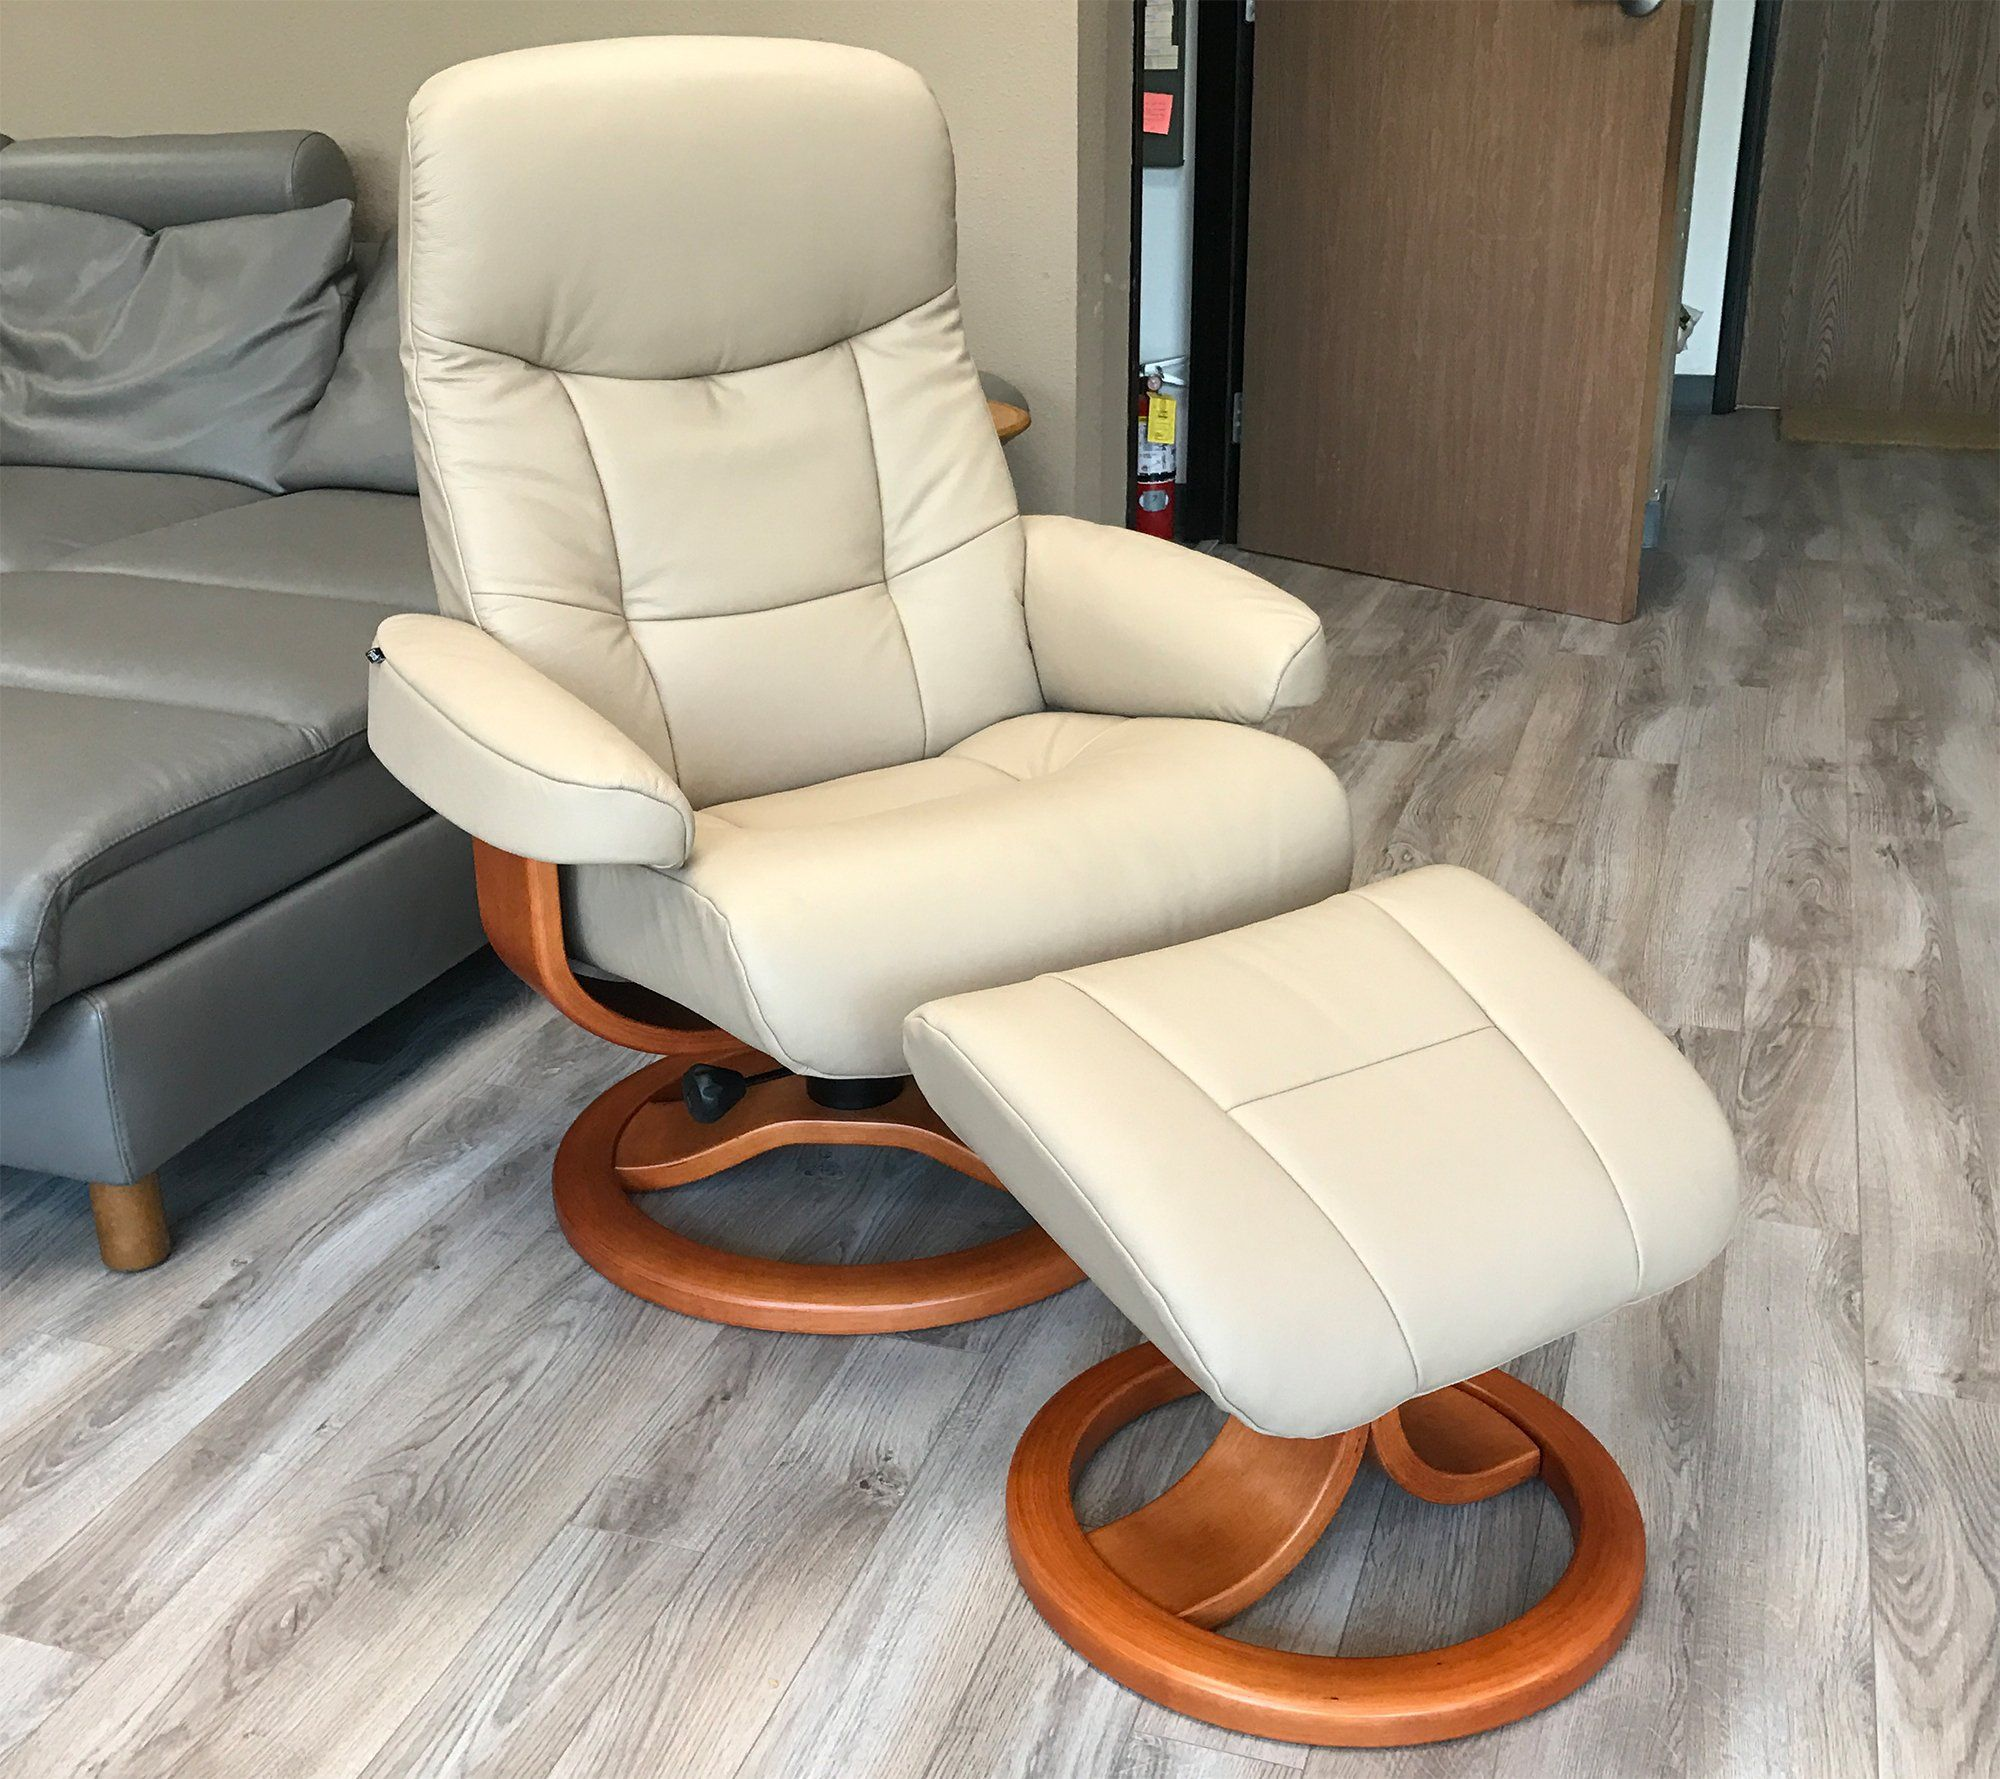 Top 10 Best Recliners With Ottoman Reviewed Homeluf Com Classy